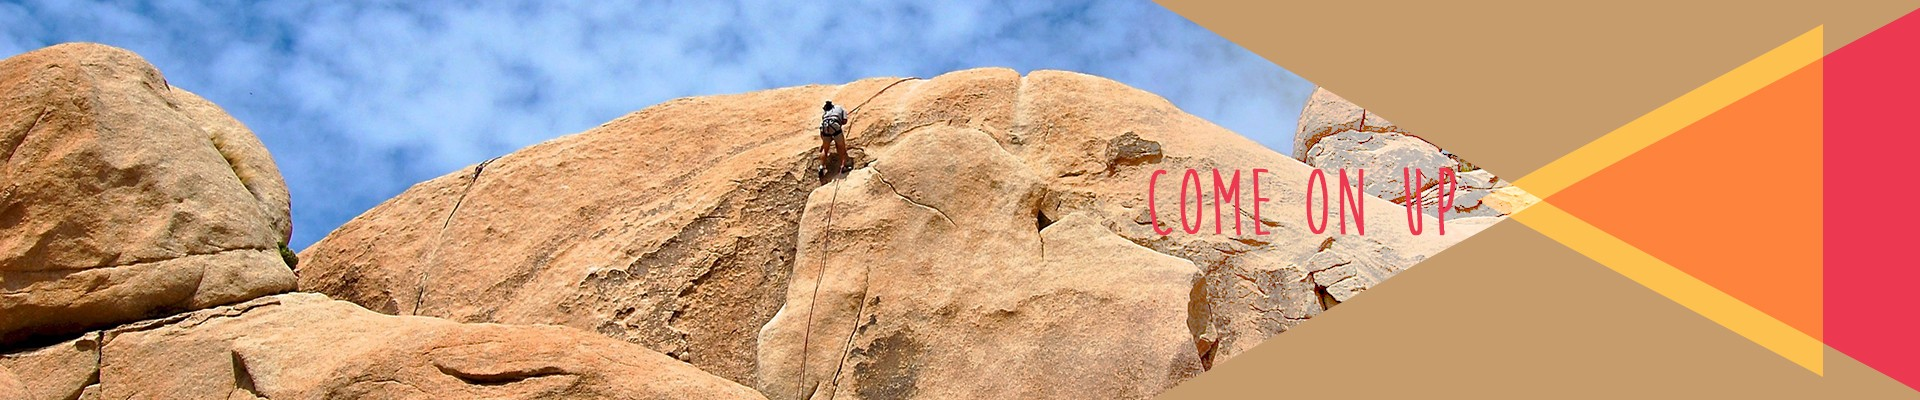 Come on up - Joshua Tree National Park